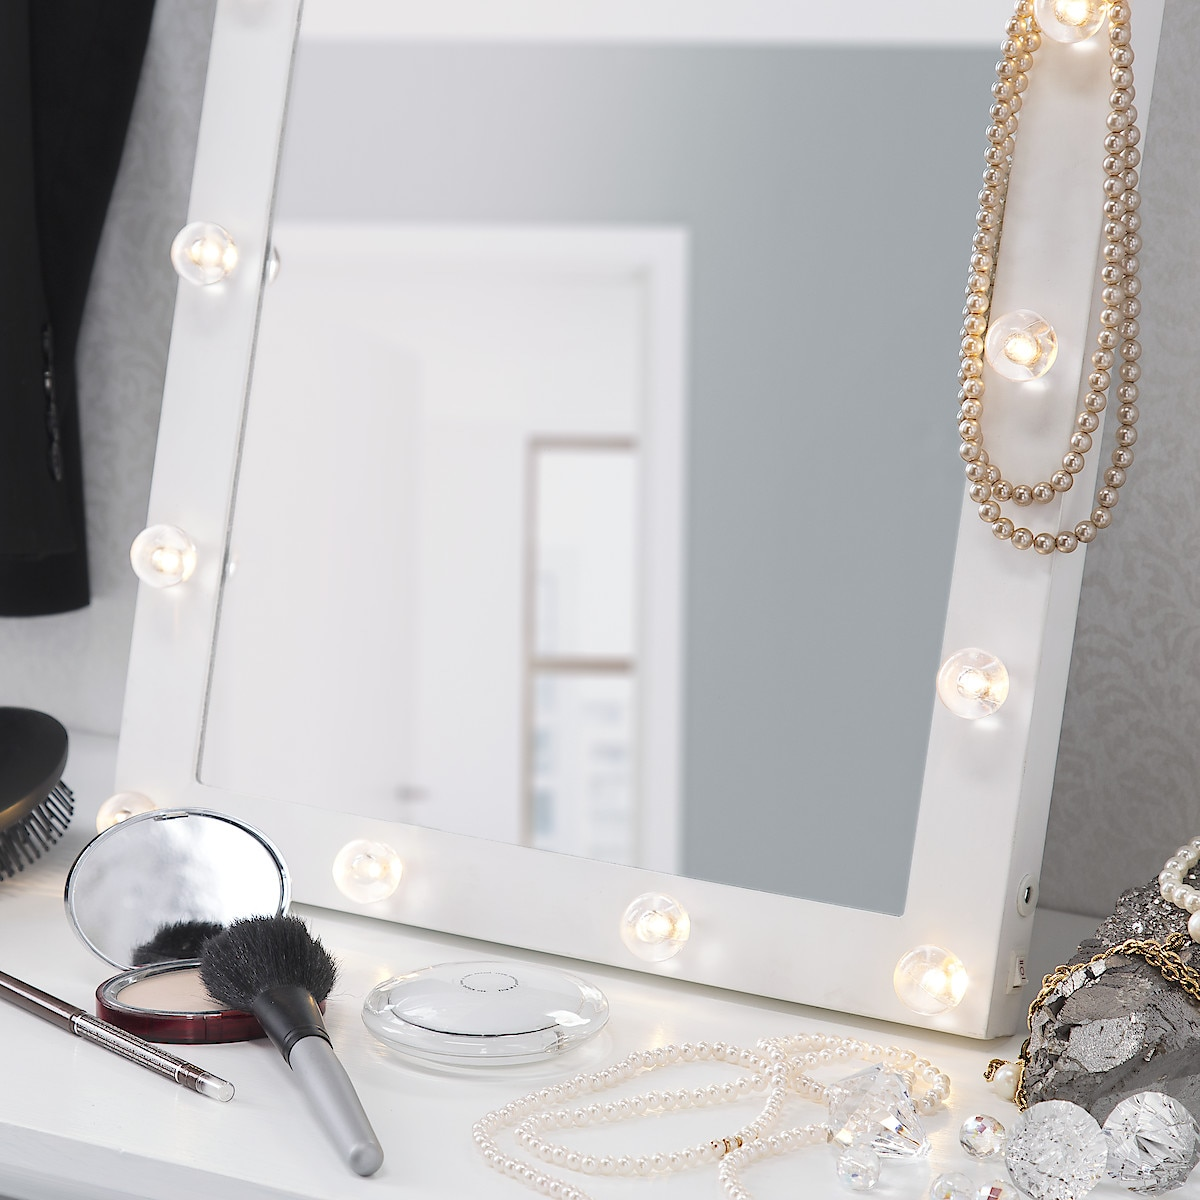 Northlight Mirror with Decorative LED Lights